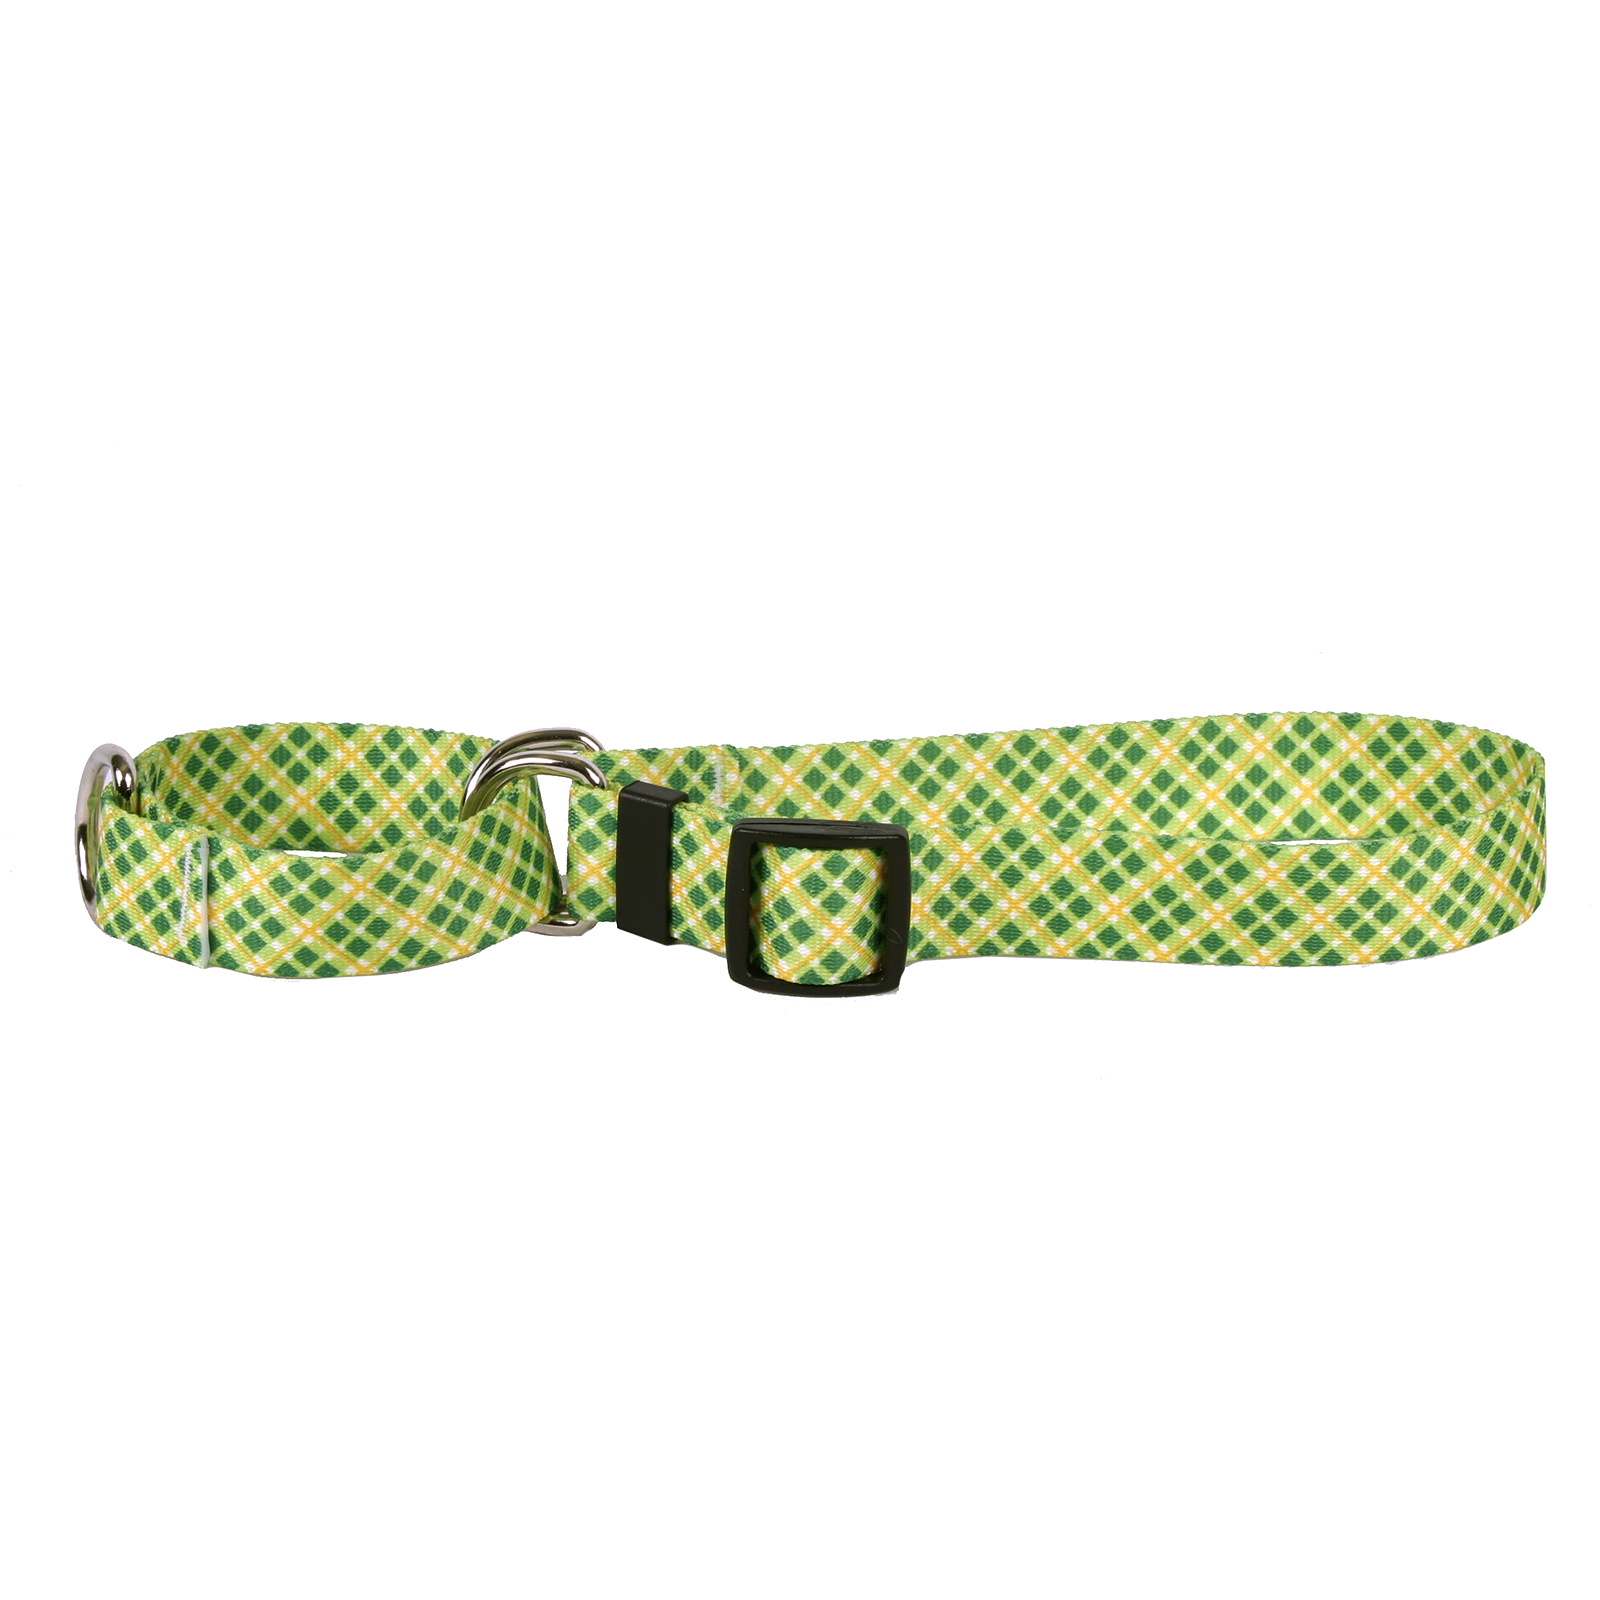 Yellow and Green Diagonal Plaid Martingale Collar